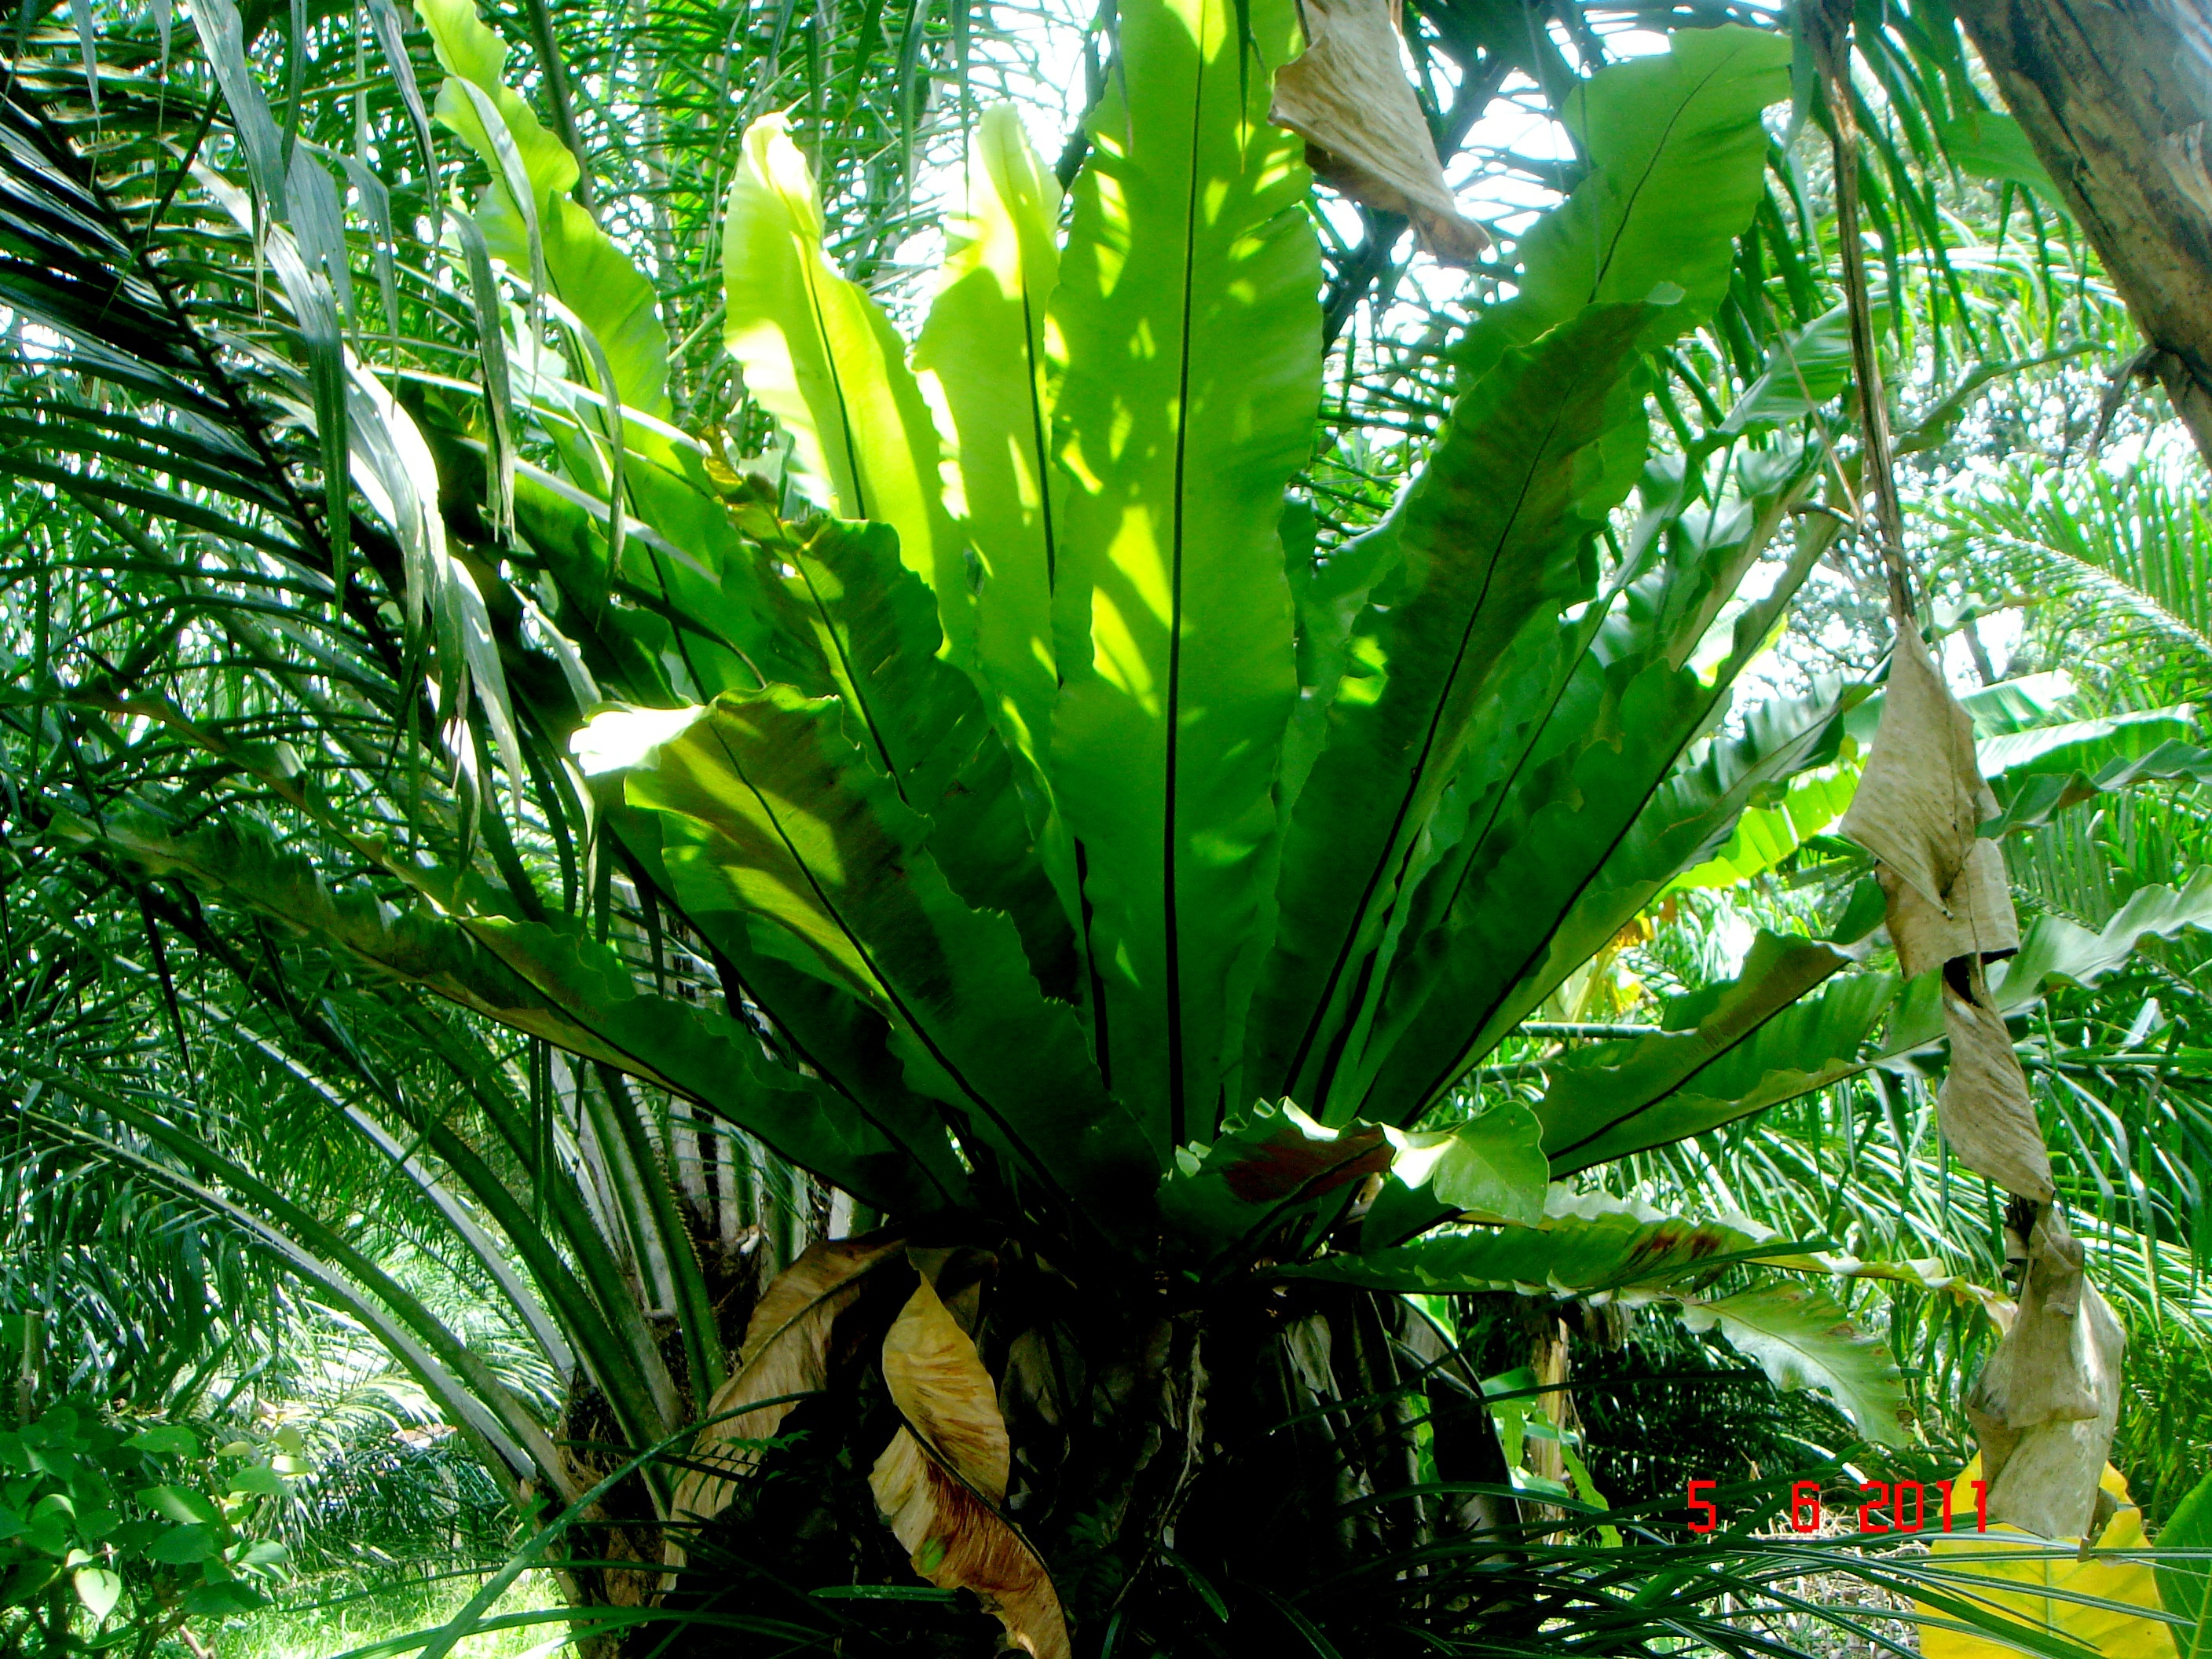 Image of Hawai'I birdnest fern